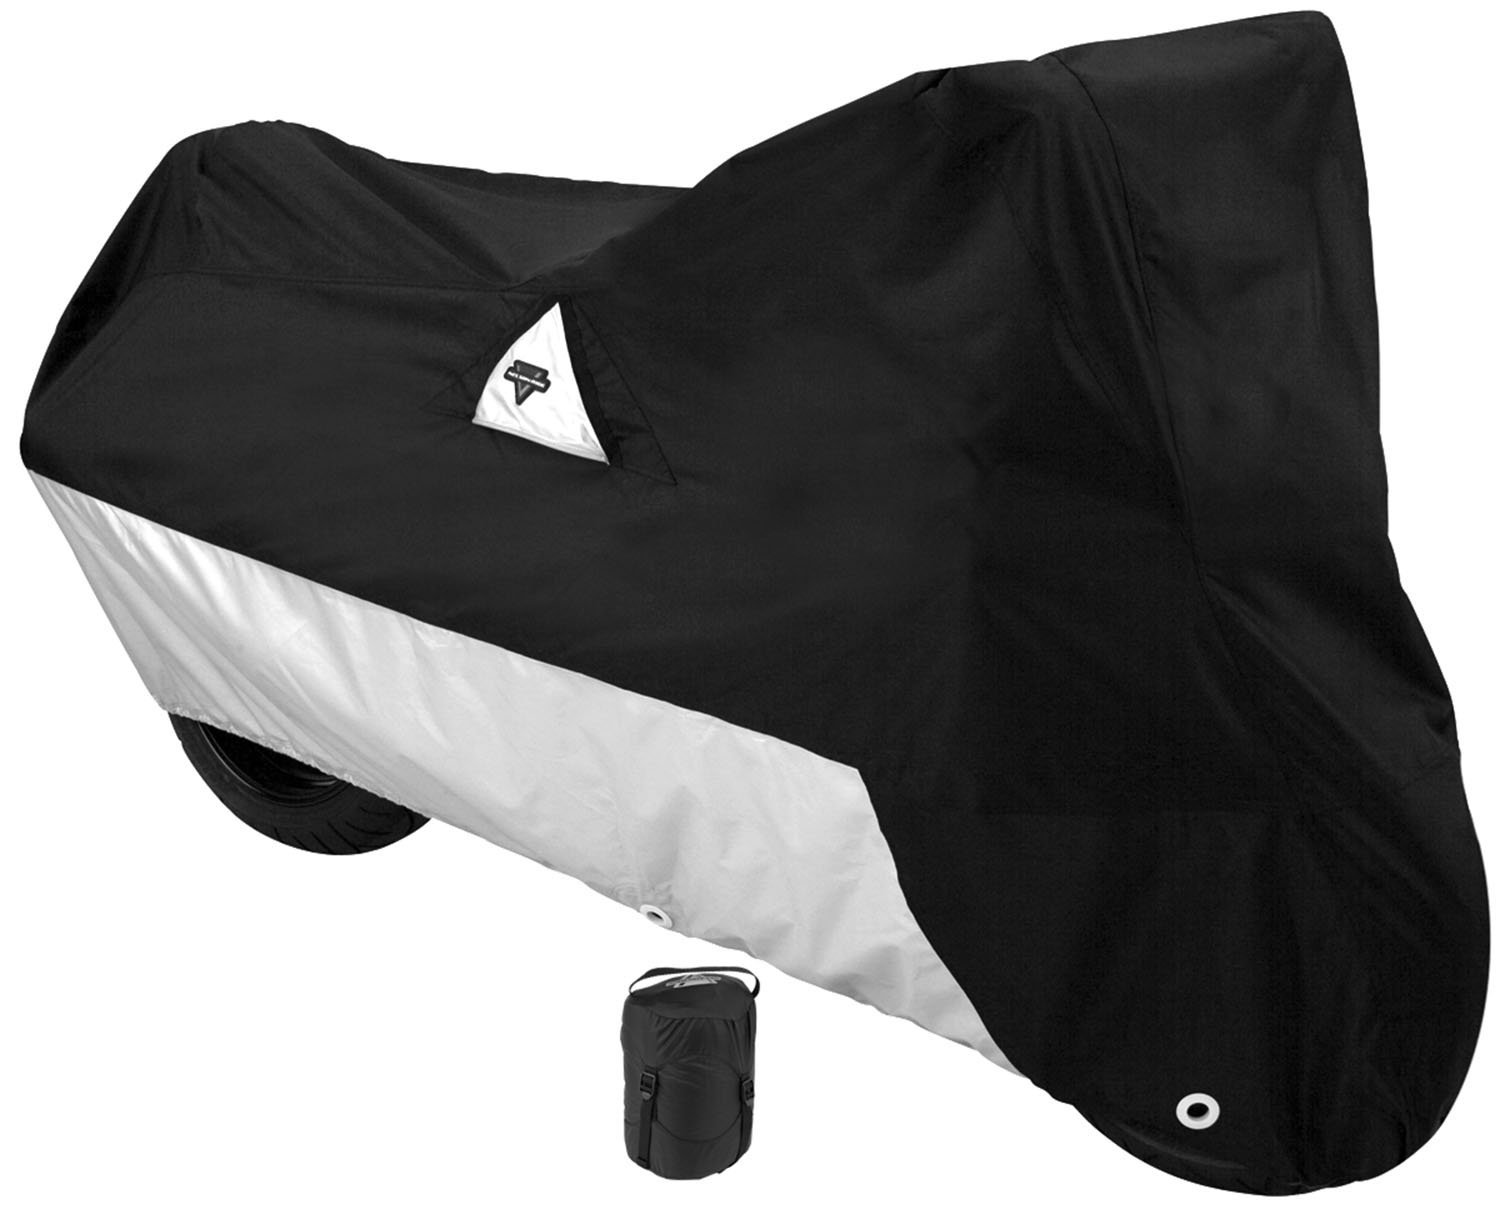 Nelson-Rigg Defender 2000 Motorcycle Cover, All-Weather, Waterproof, UV, Air Vents, Heat Shield, Windshield Liner, Compression Bag, Grommets, Large Fits most Sport Touring and Cruisers